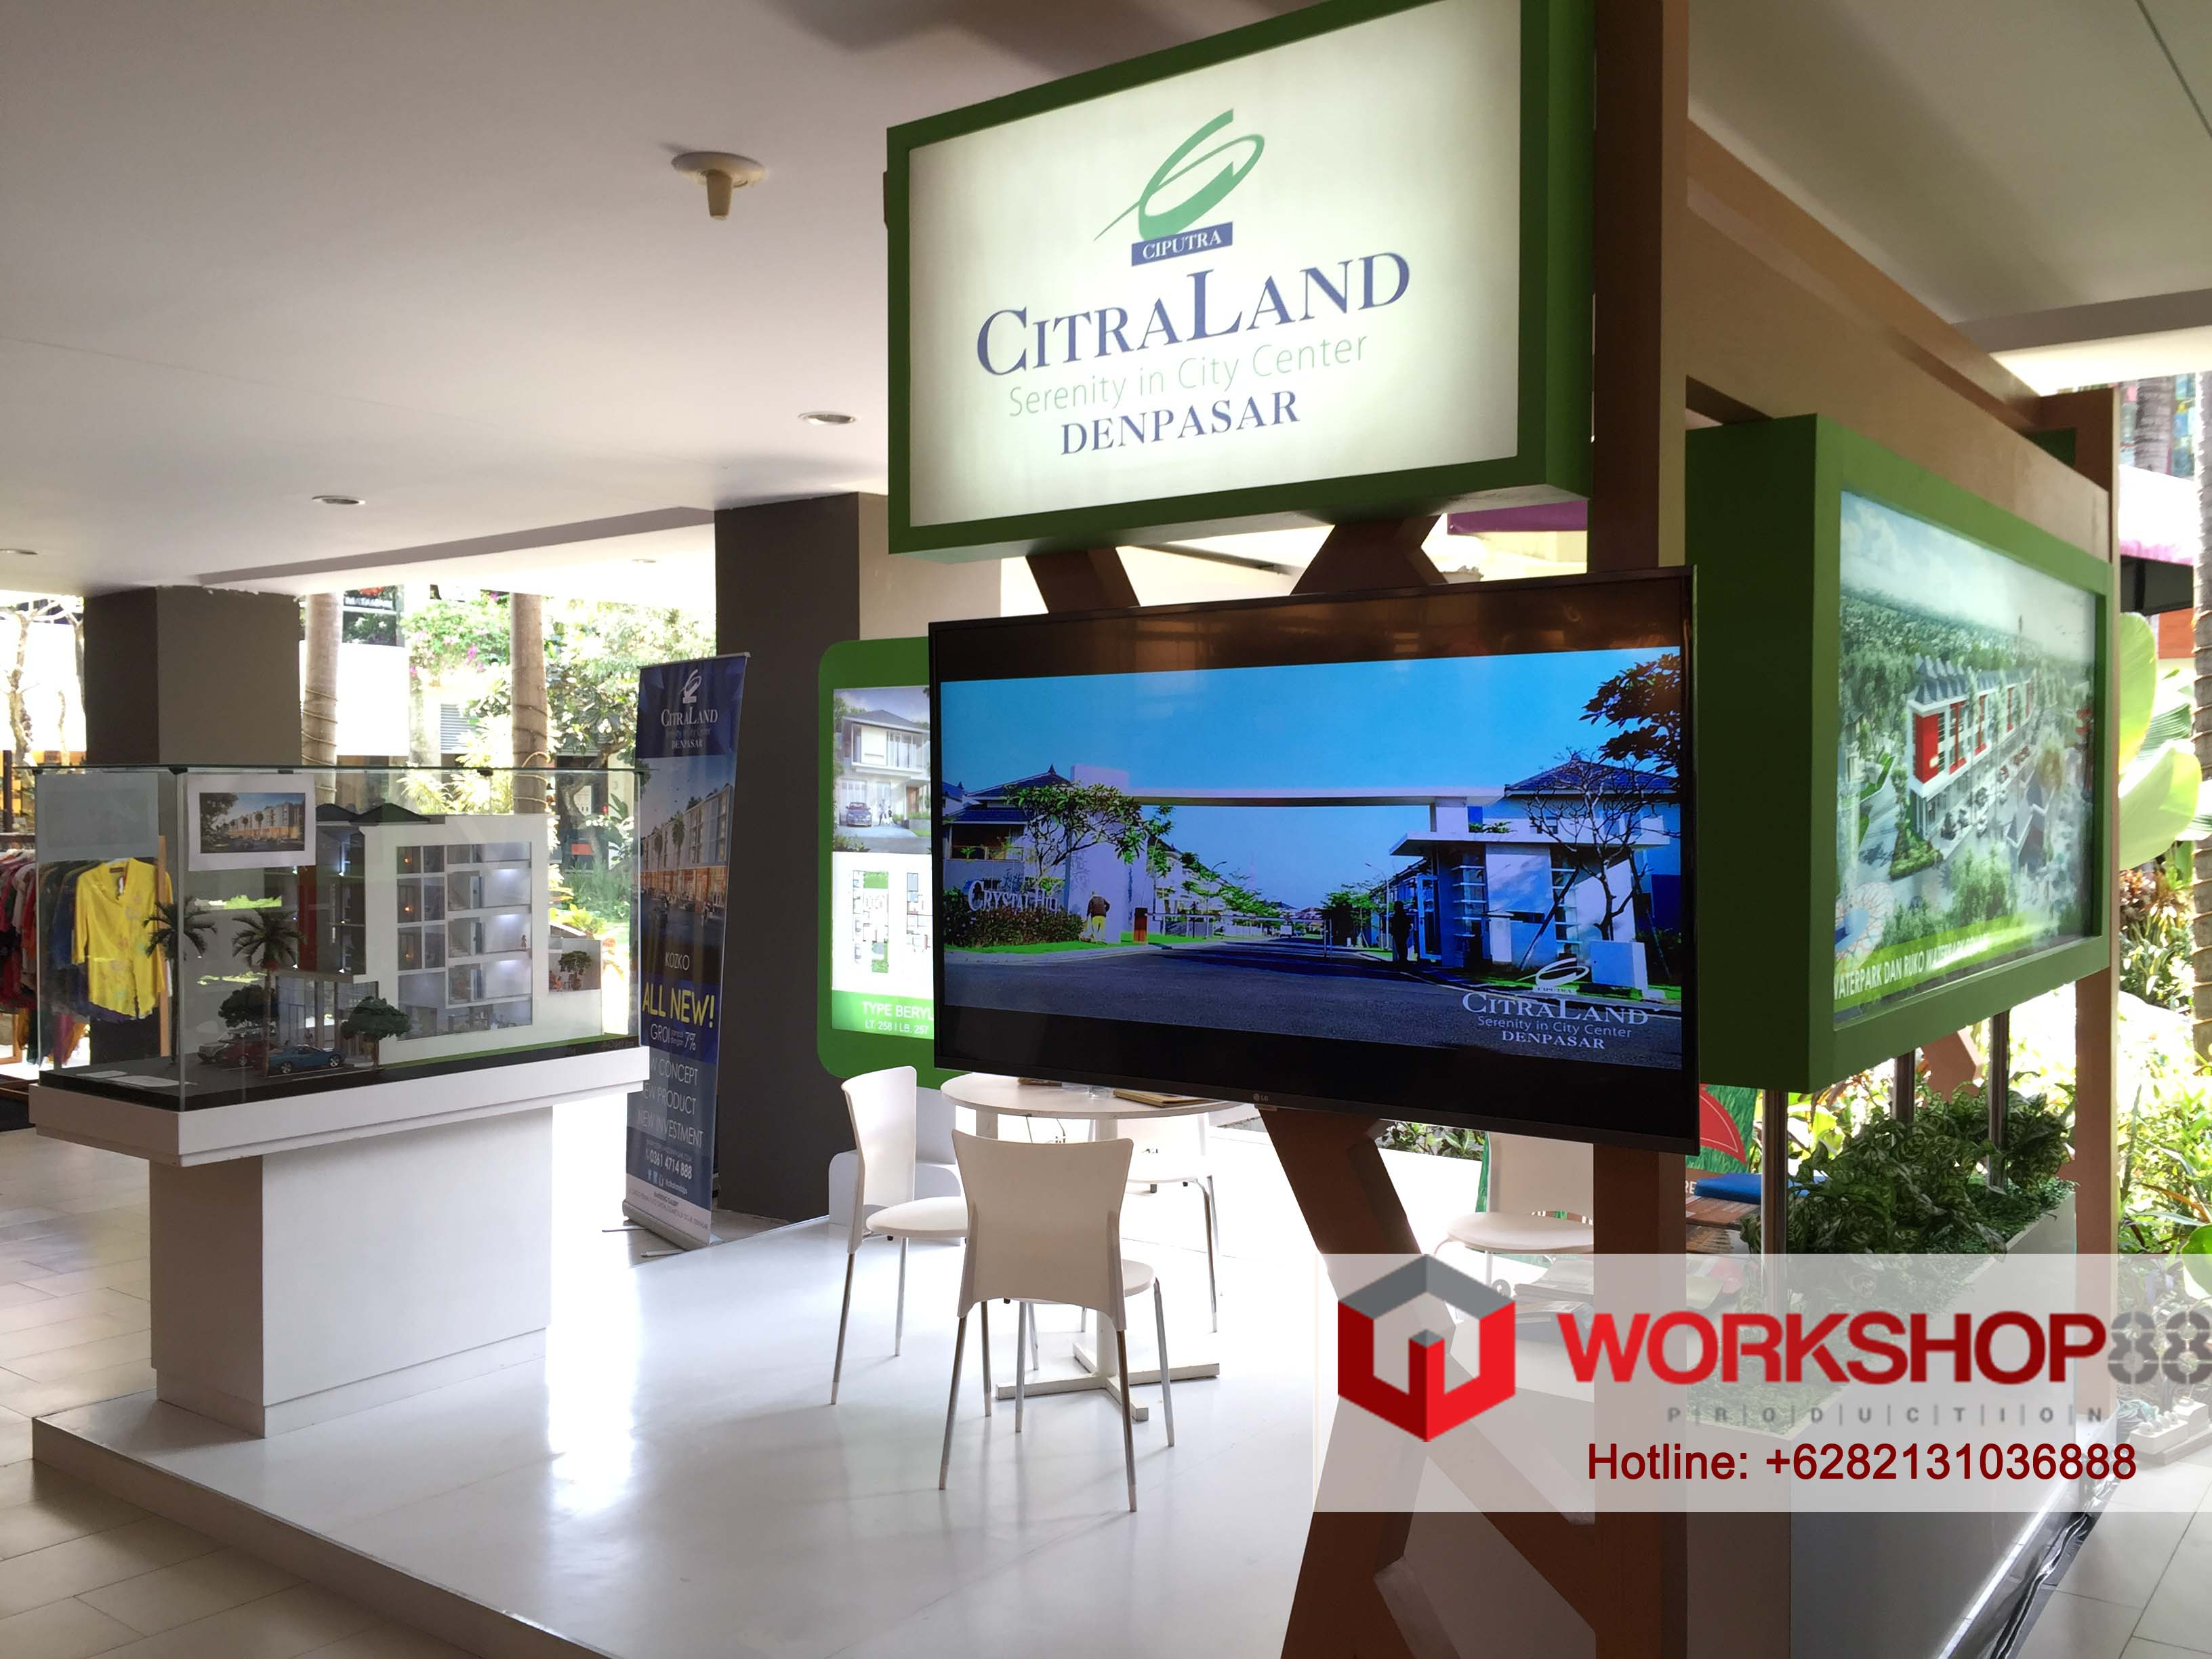 Property Exhibition Booth : Booth stand contractor bali citraland property exhibition